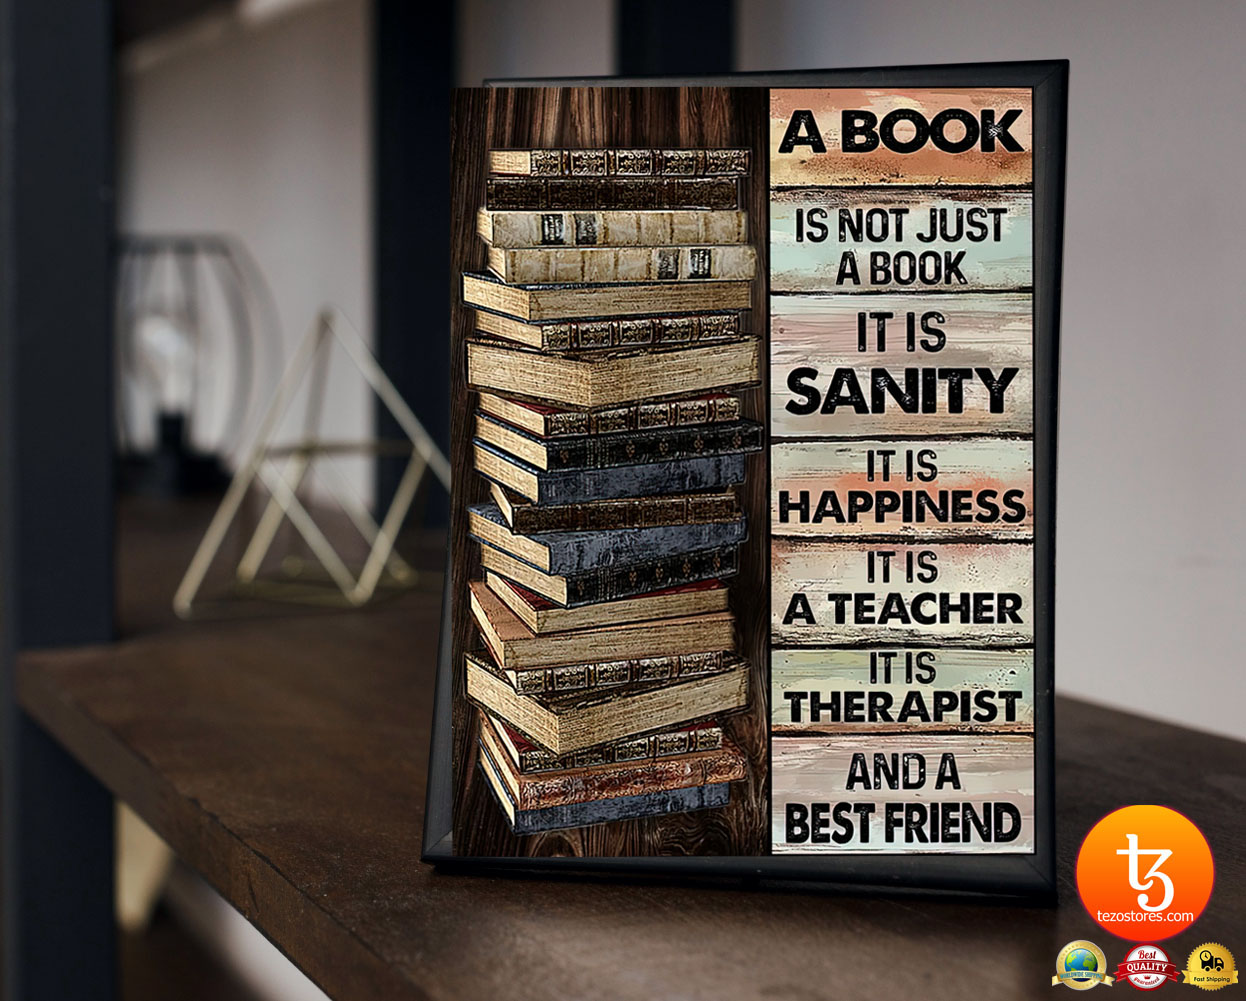 A book is not just a book it is sanity it is happiness poster 23